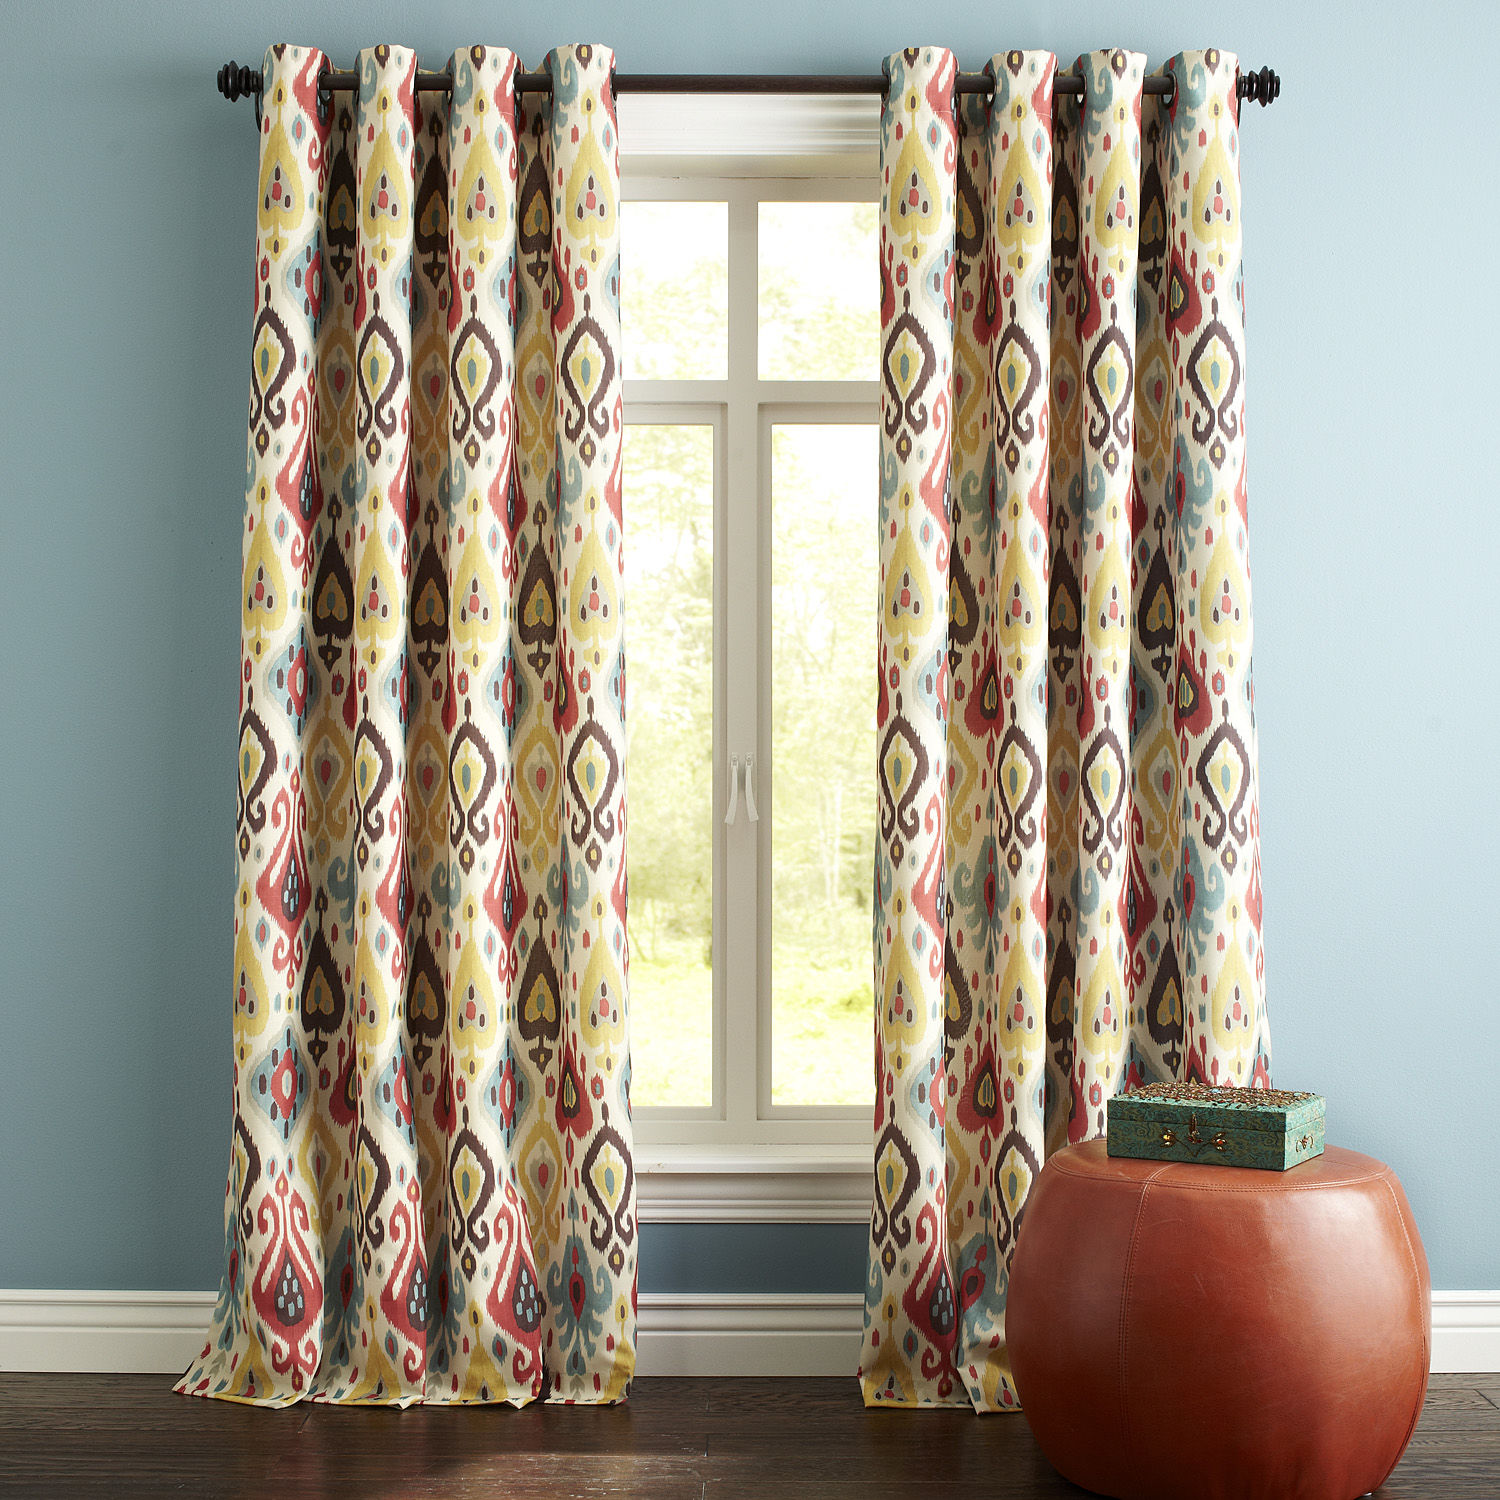 Ikat curtains from Pier 1 Imports